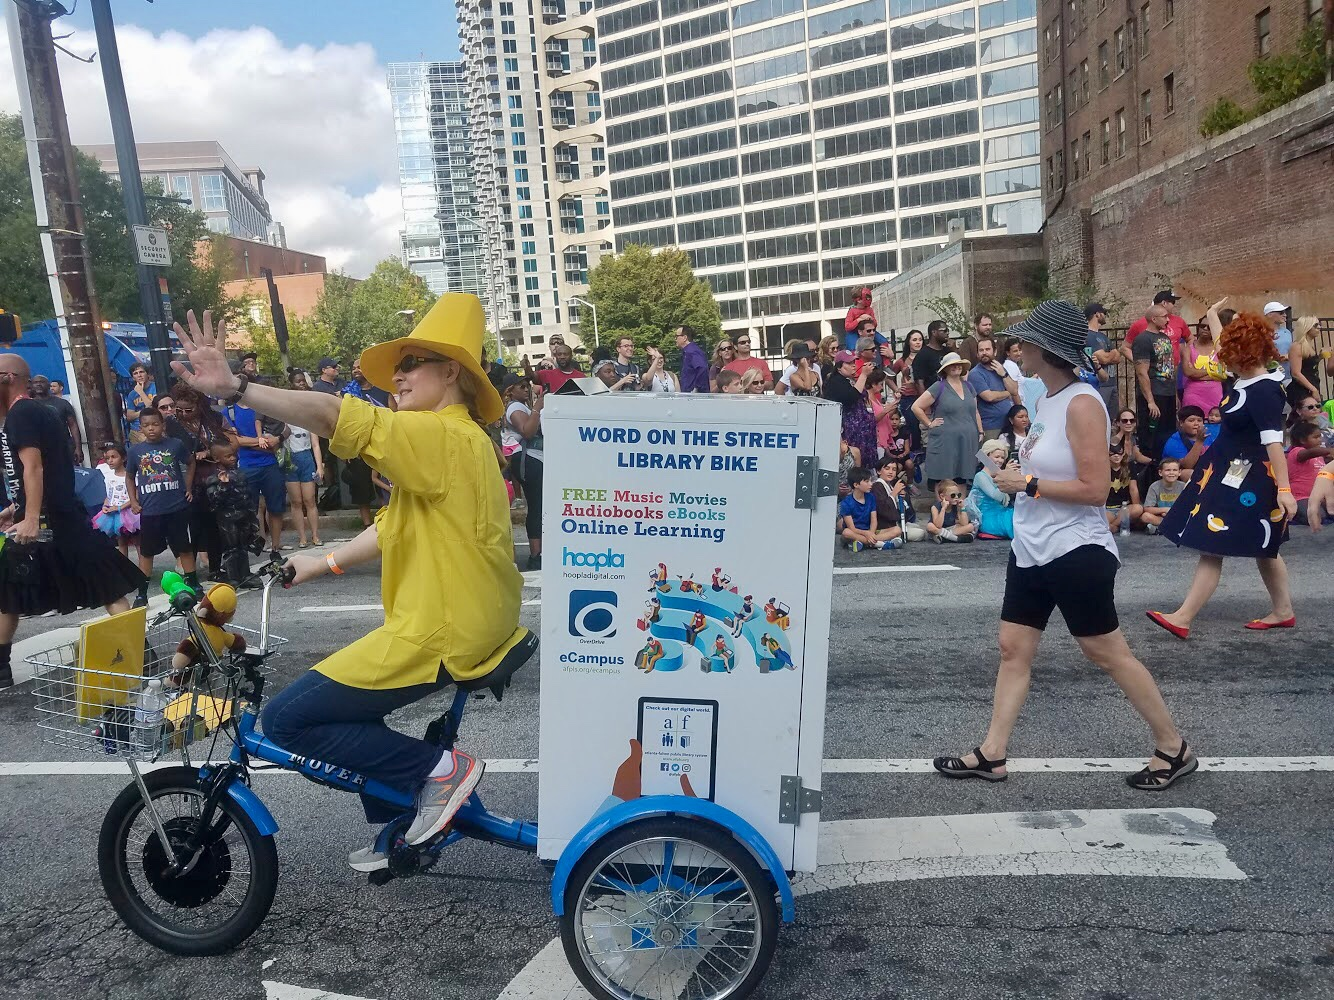 Photograph of Library bike in DragonCon Parade.